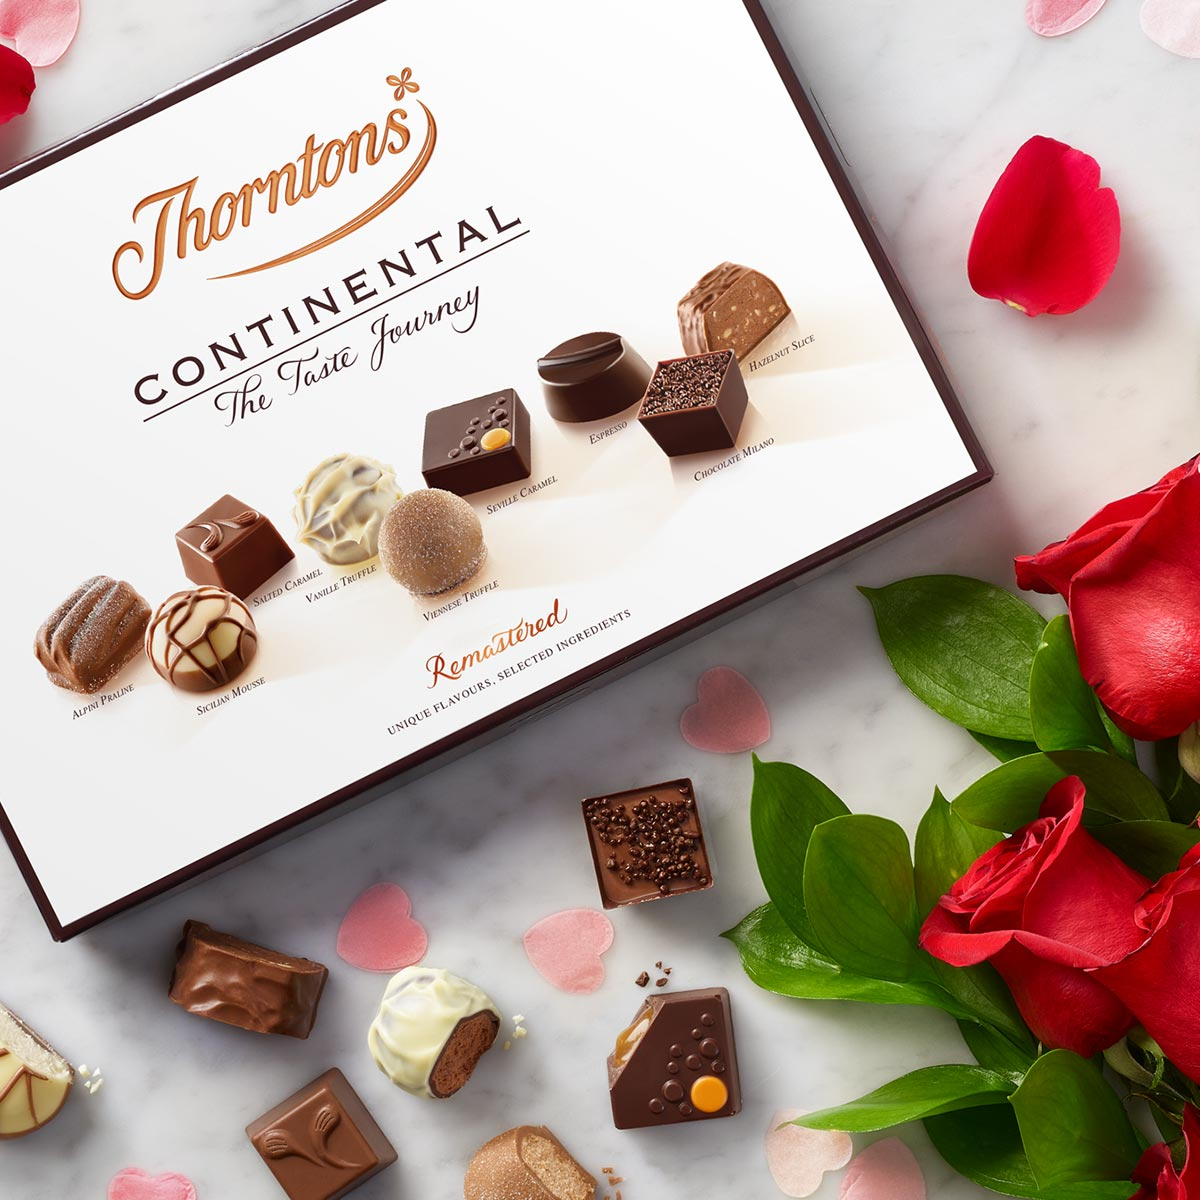 image showing valentines chocolate